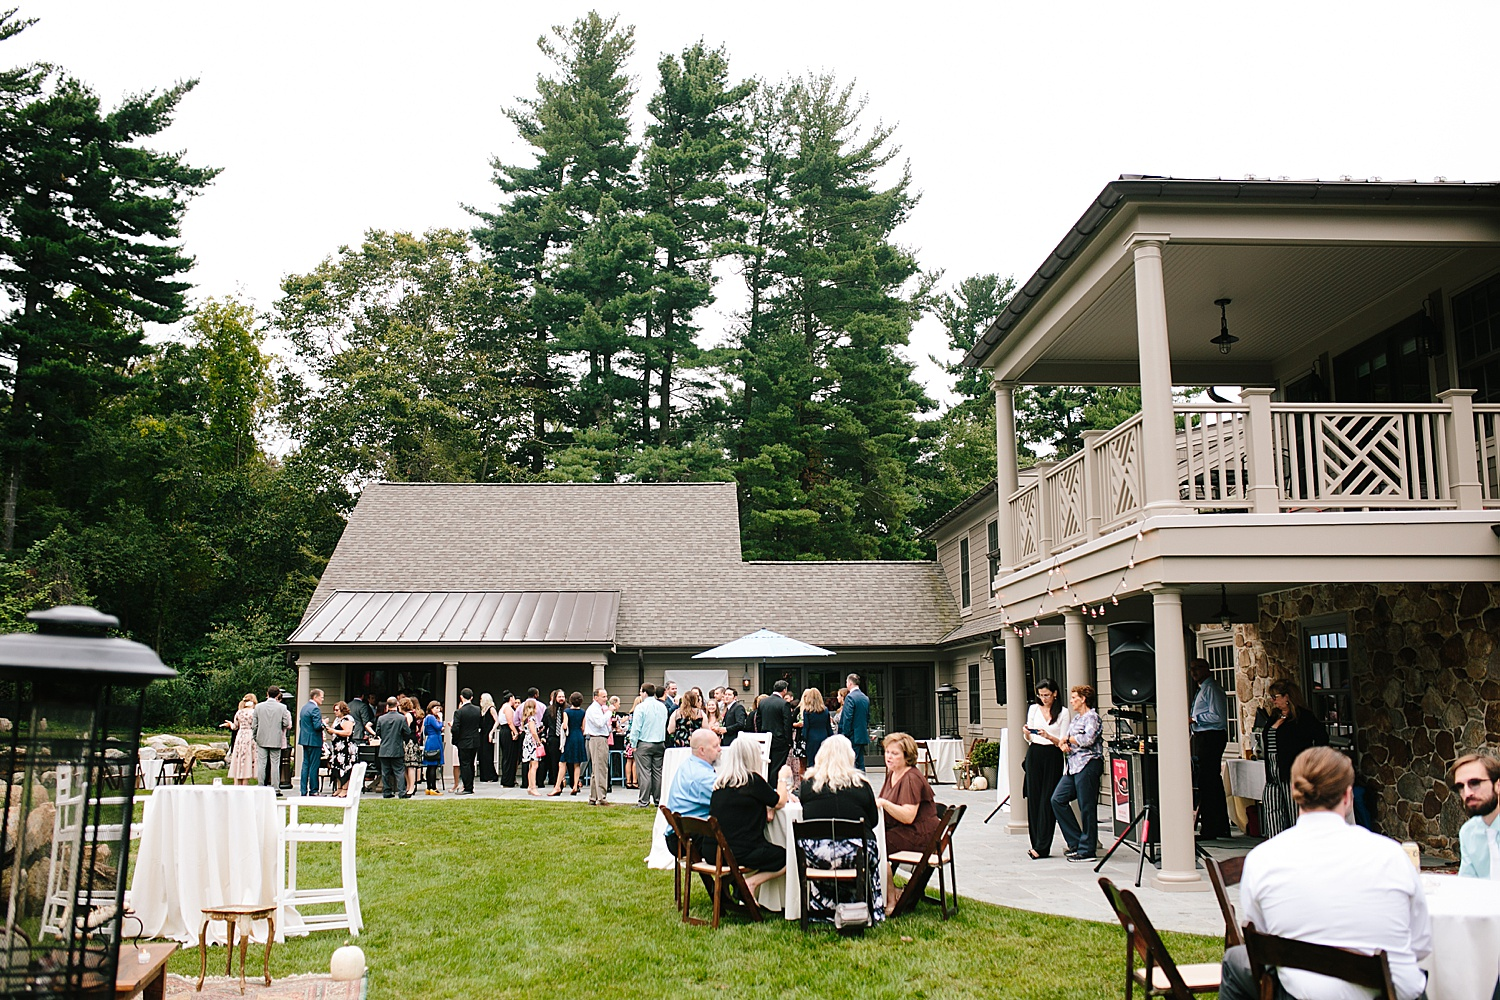 ashleykyle_backyard_wedding_havertown_image066.jpg